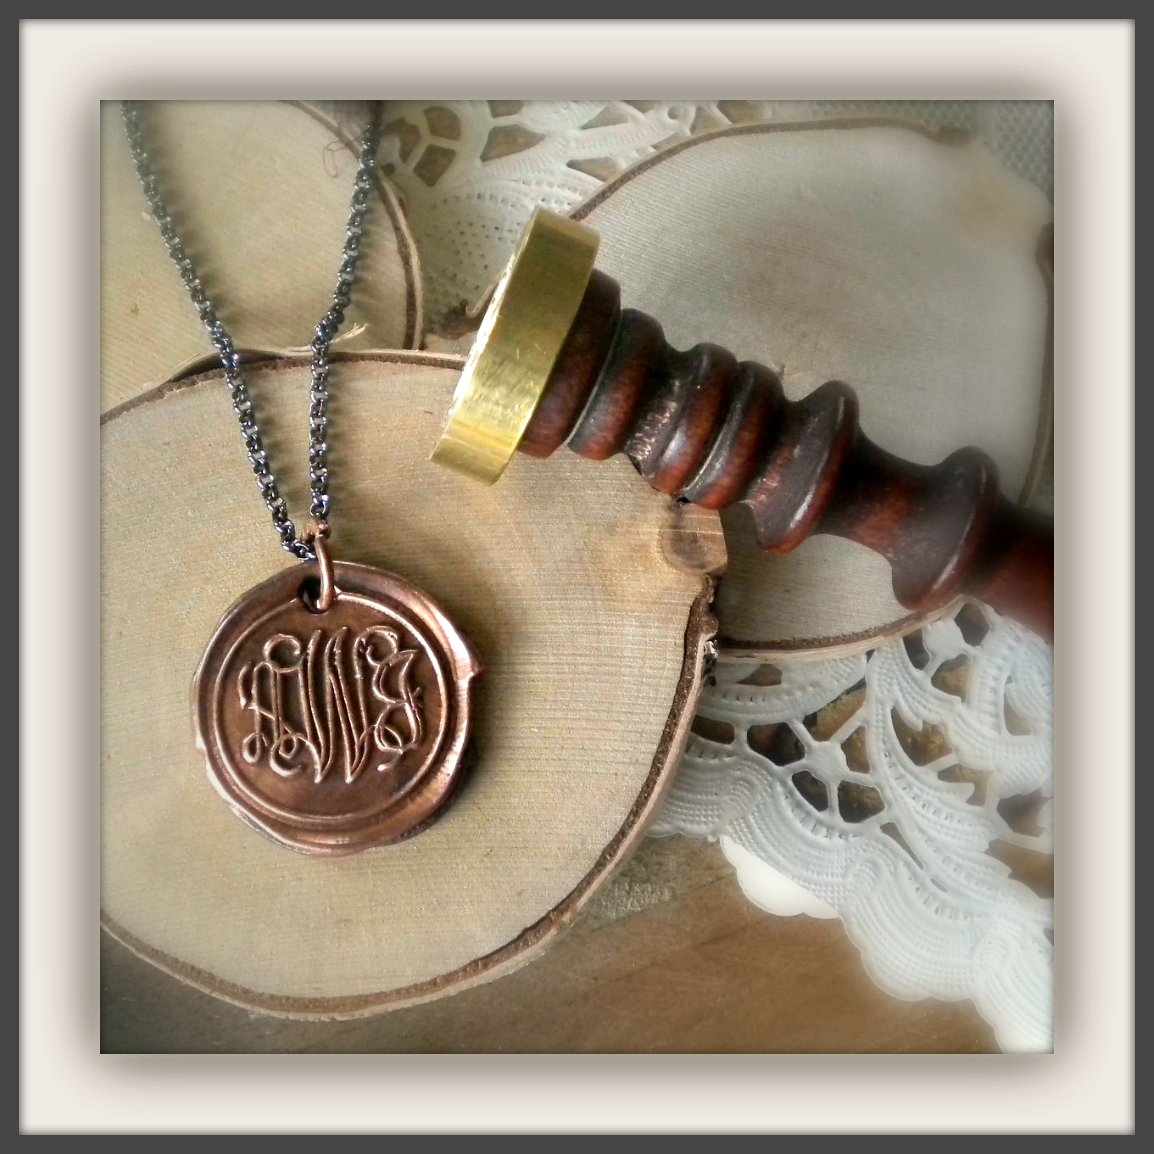 Copper Wax Seal Monogram Charm Necklace You Keep The Stamp